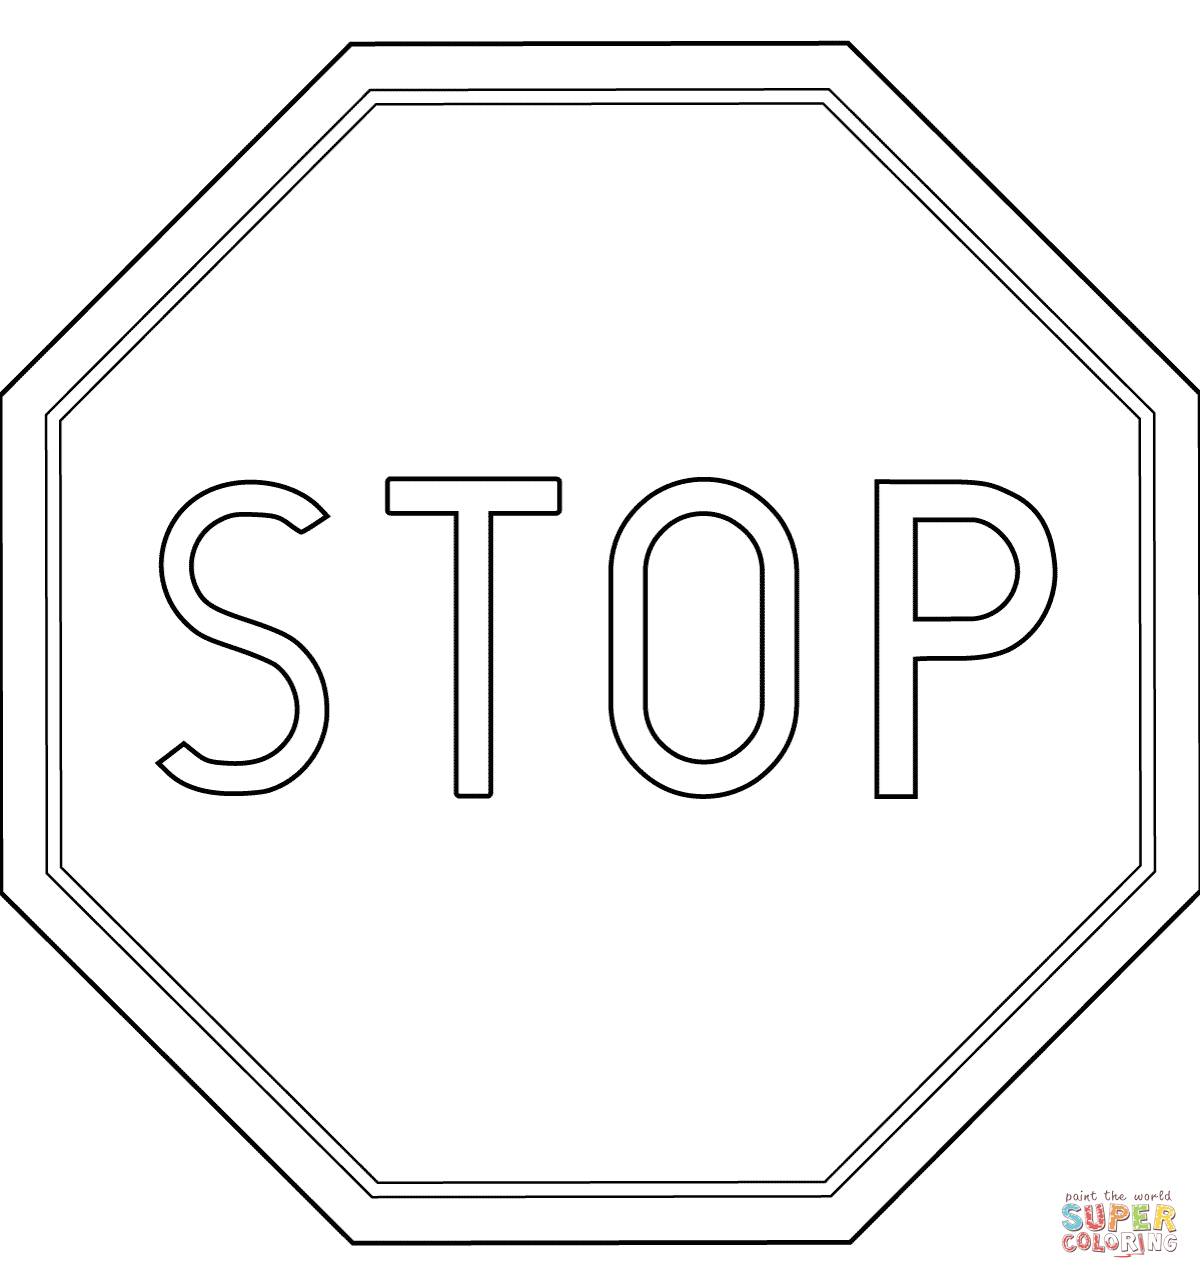 Poland Stop Road Sign B-20 Coloring Page | Free Printable Coloring Pages - Free Printable Stop Sign To Color